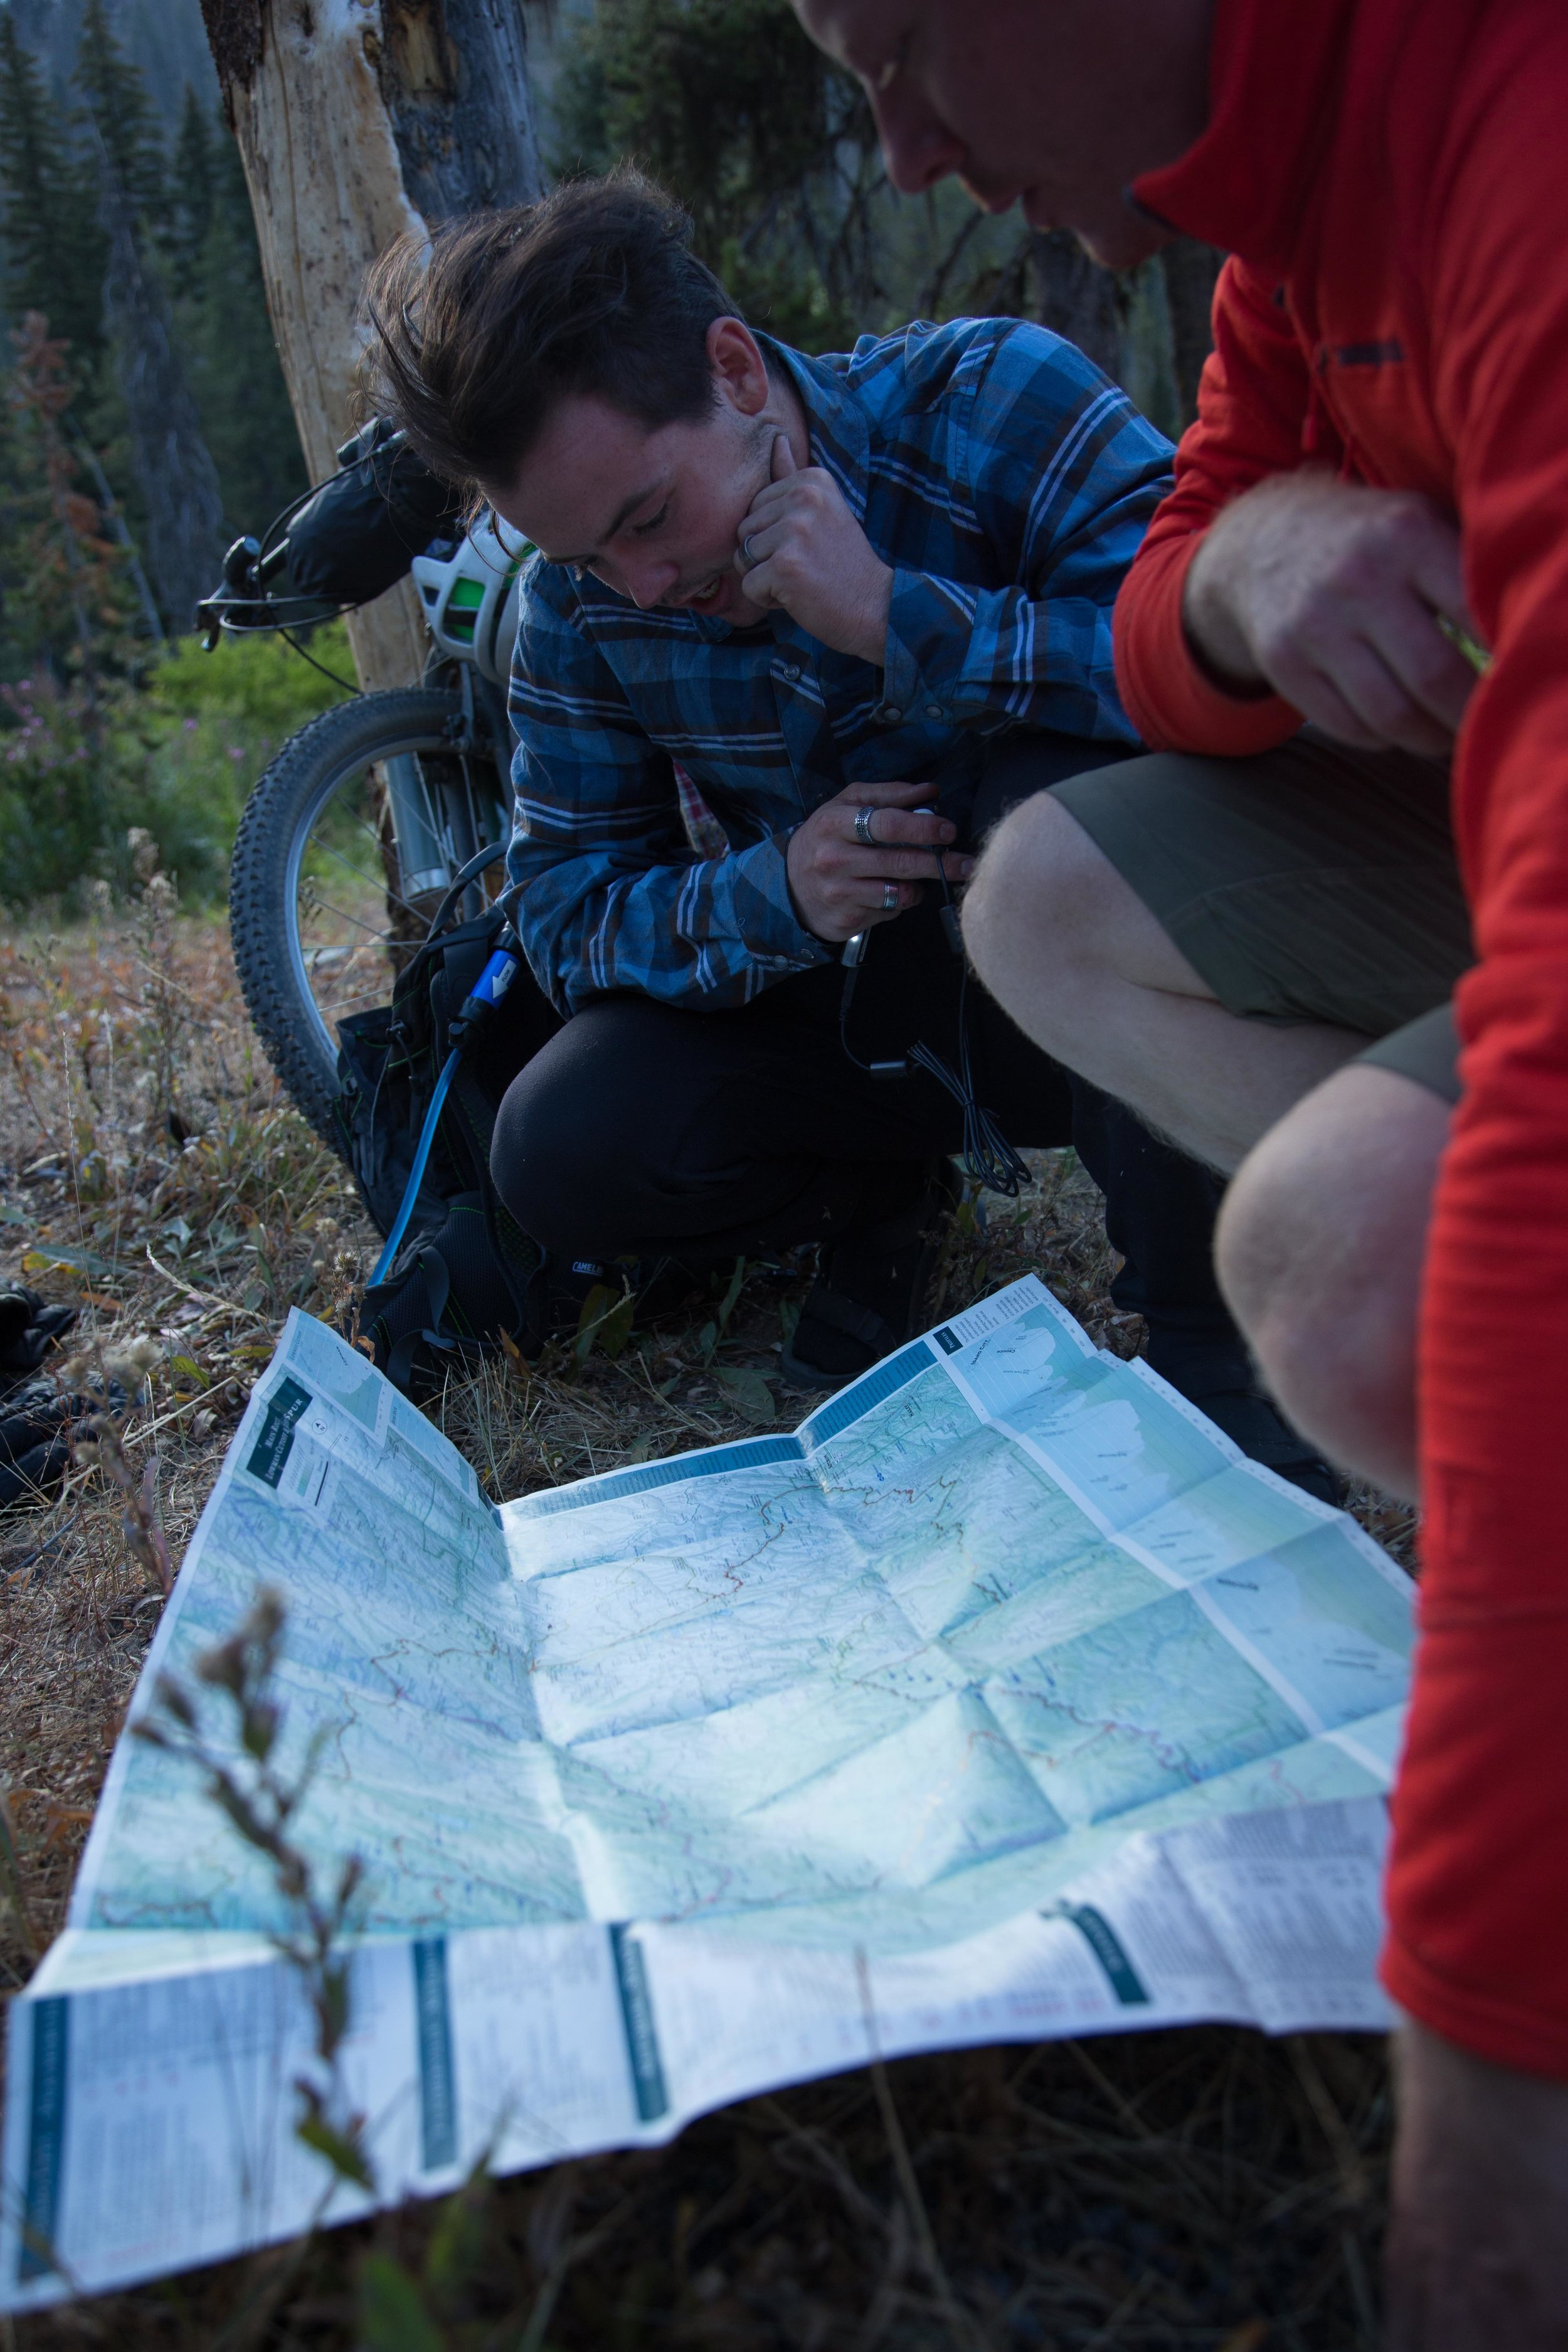 discussing map options   photo by james